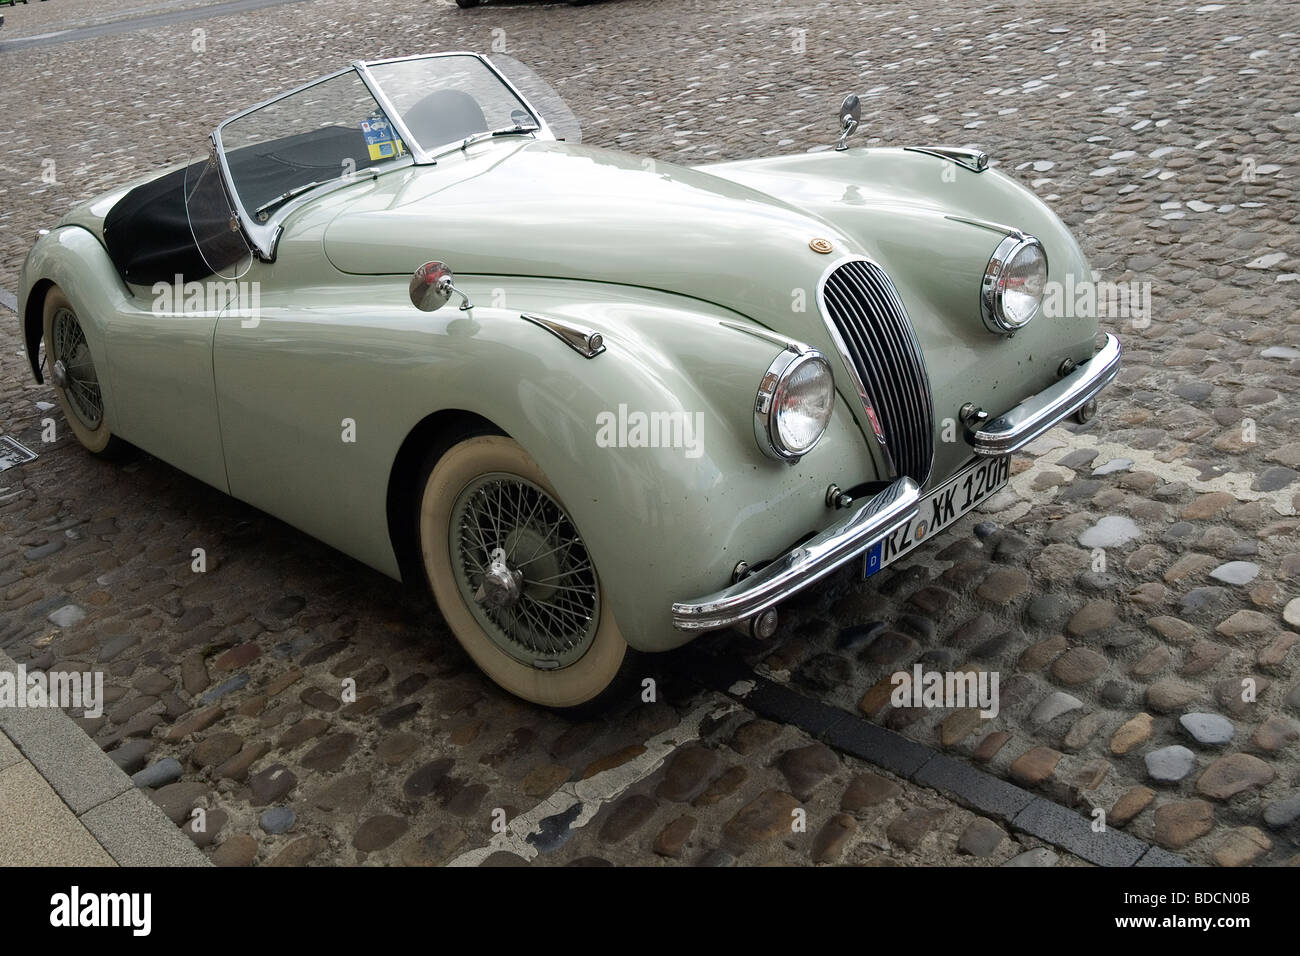 A Pale Green German Registered Jaguar XK120 Sports Car Parked In Richmond  North Yorkshire Summer 2009